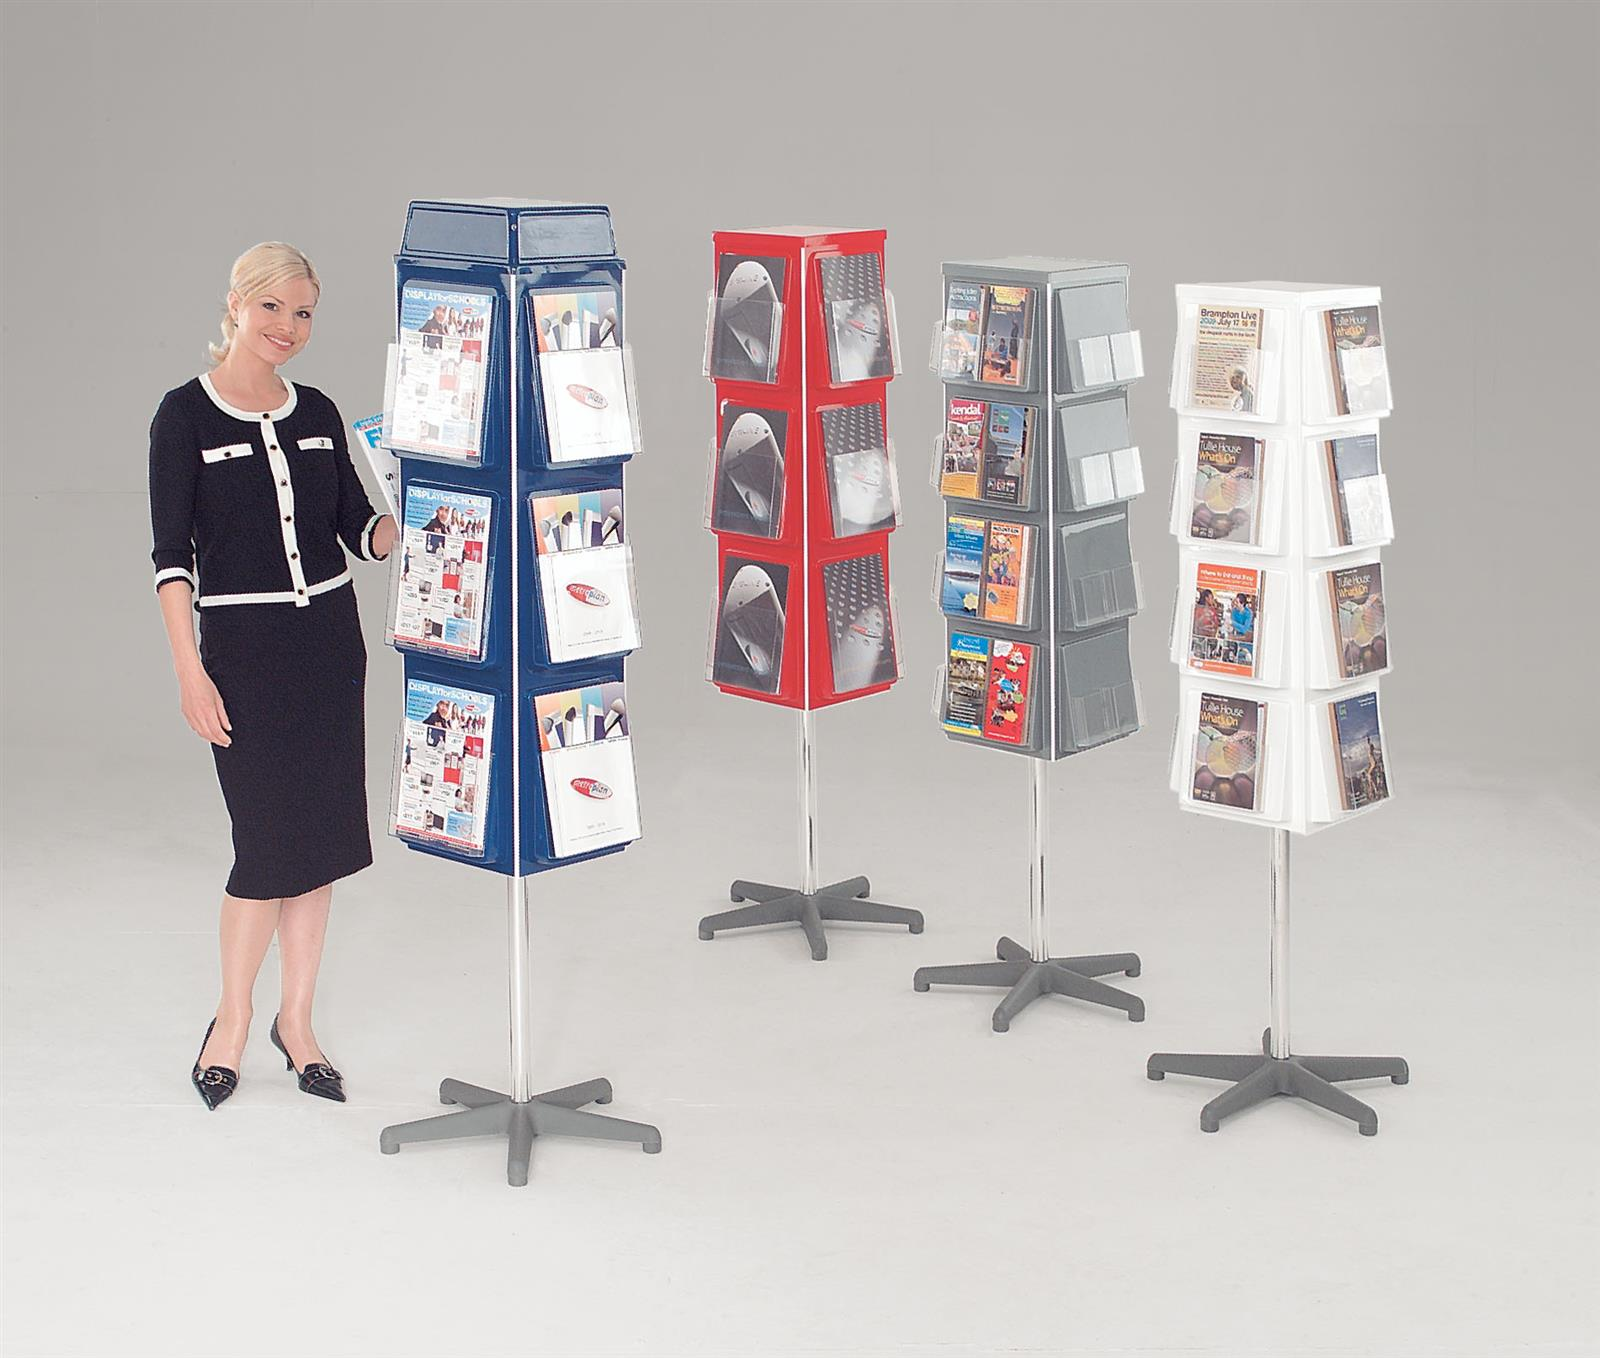 Traditional 4 Sided Revolving Brochure Dispensers